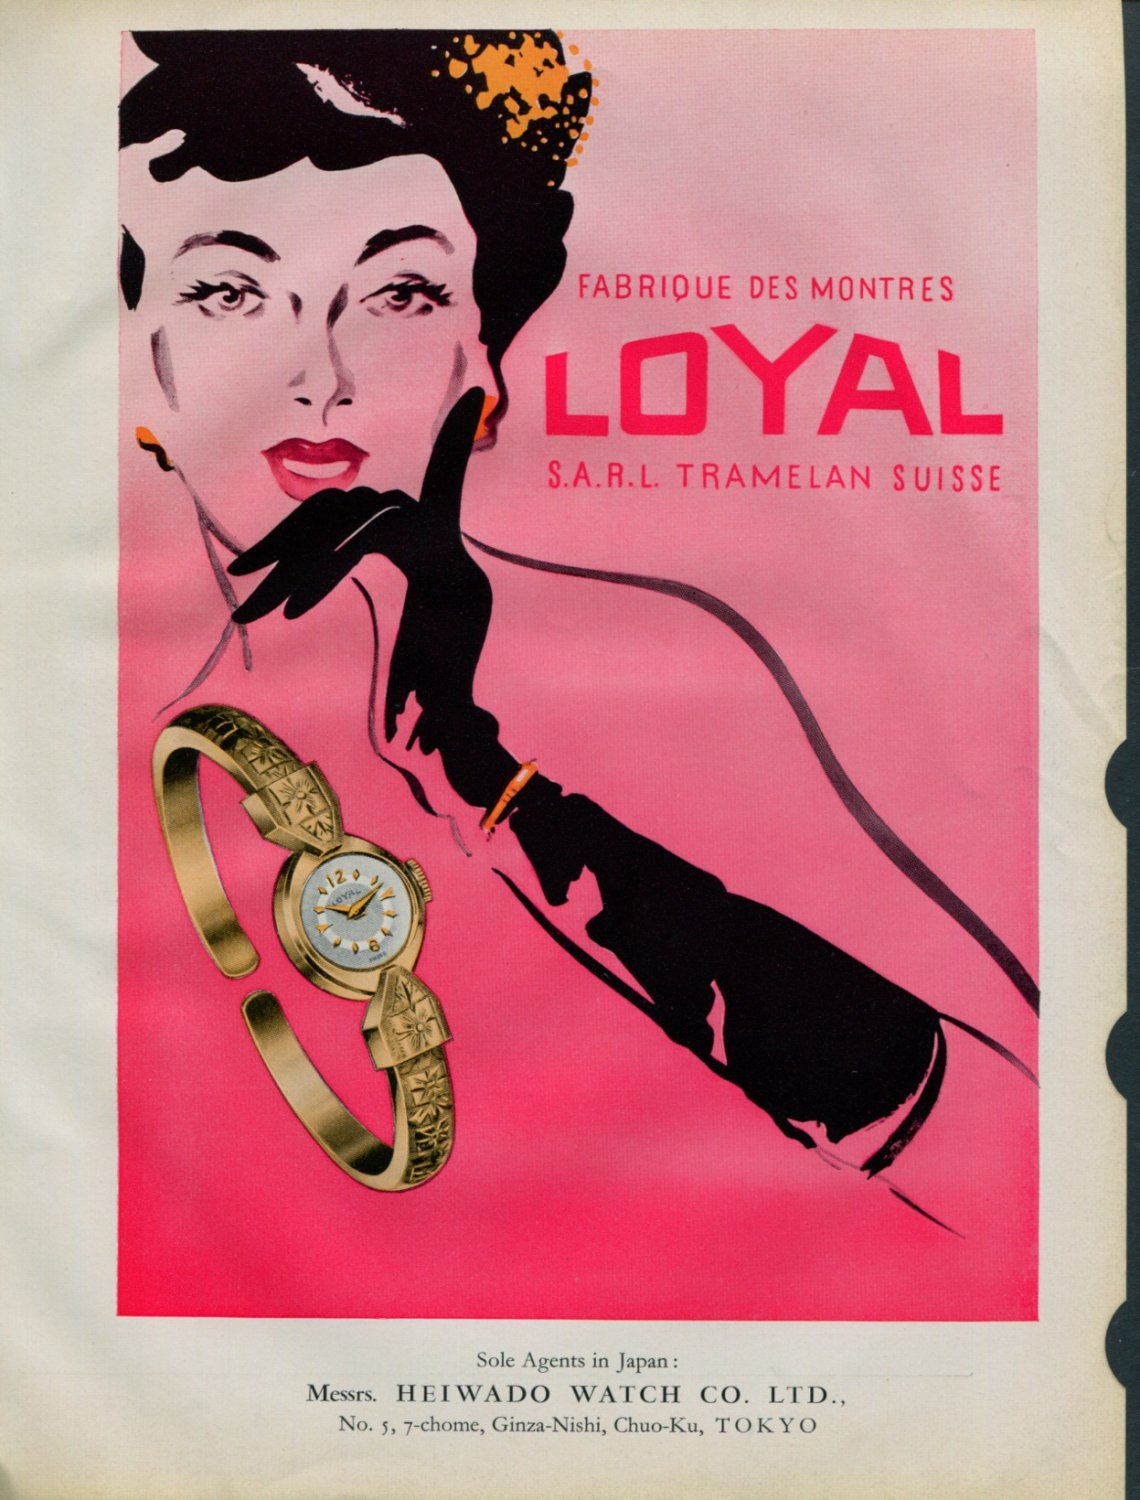 1958 Loyal Watch Company Switzerland 1958 Swiss Ad Suisse Advert Heiwado Watch Company Japan